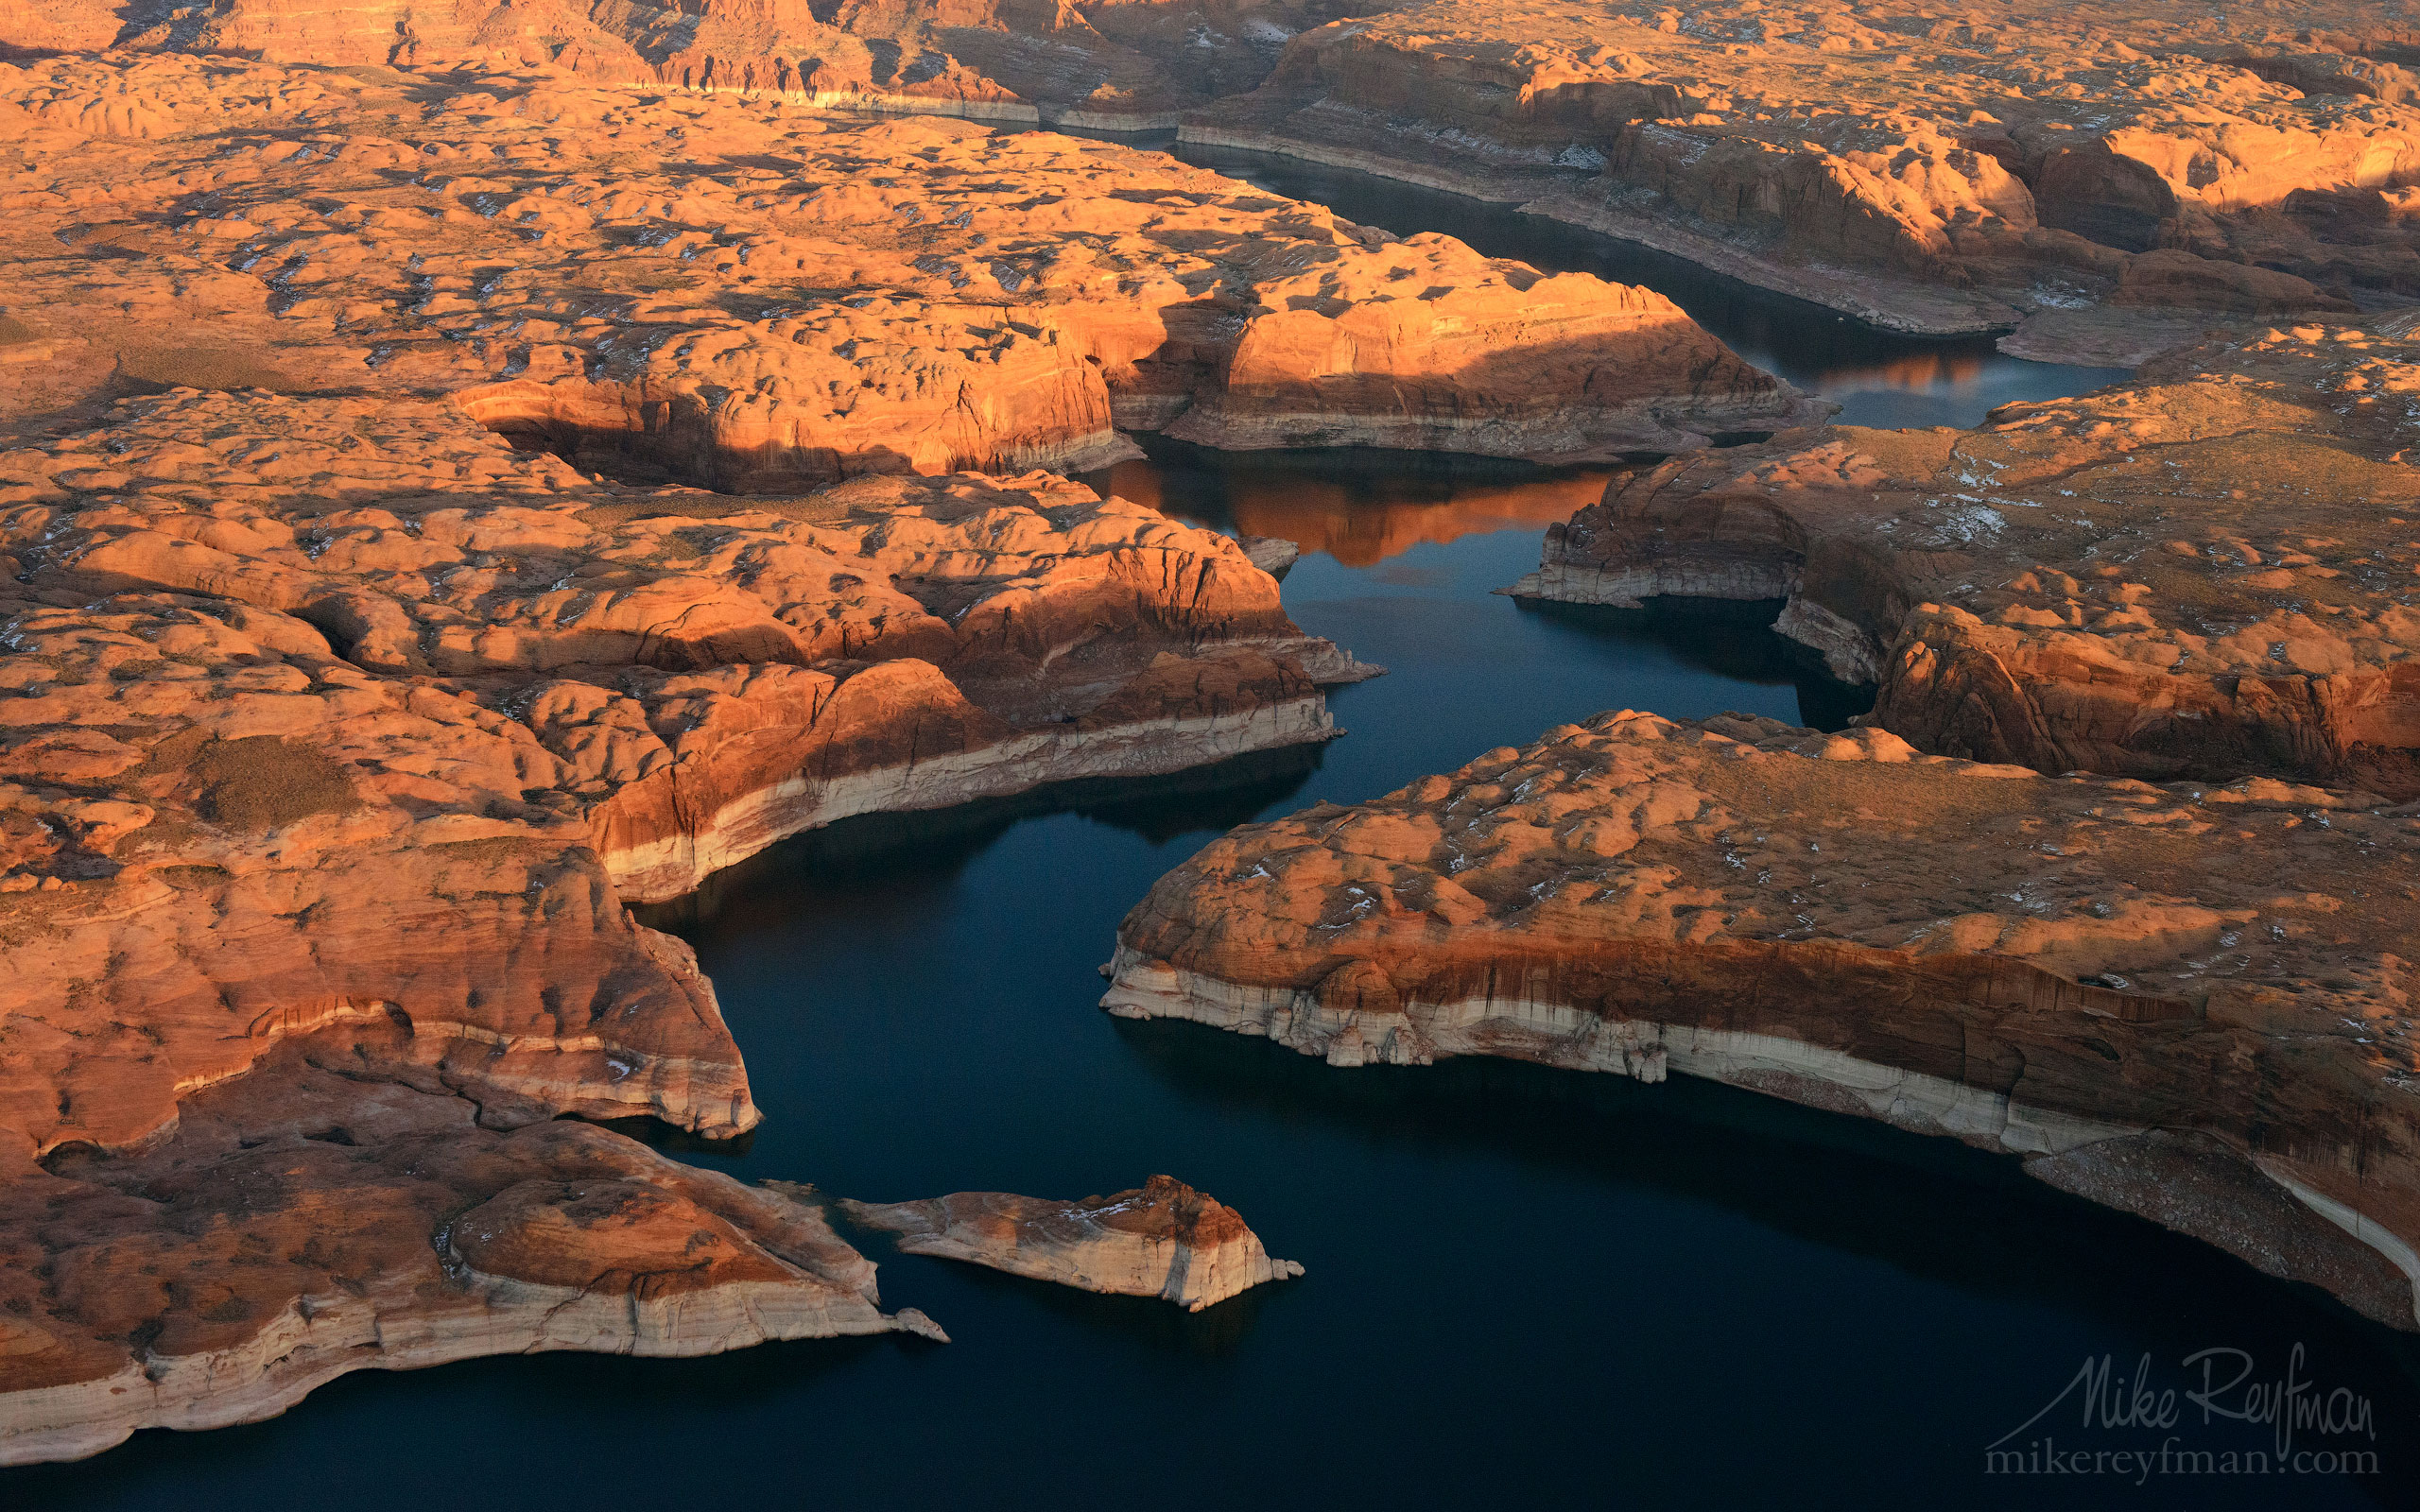 Escalante River Canyon. Lake Powell, Glen Canyon NRA. Uta/Arizona, USA. Aerial. 112-LP3_D8C9606.jpg - Lake Powell, Glen Canyon NAR. Colorado and Sun Juan Rivers. Utah/Arizona, USA  - Mike Reyfman Photography